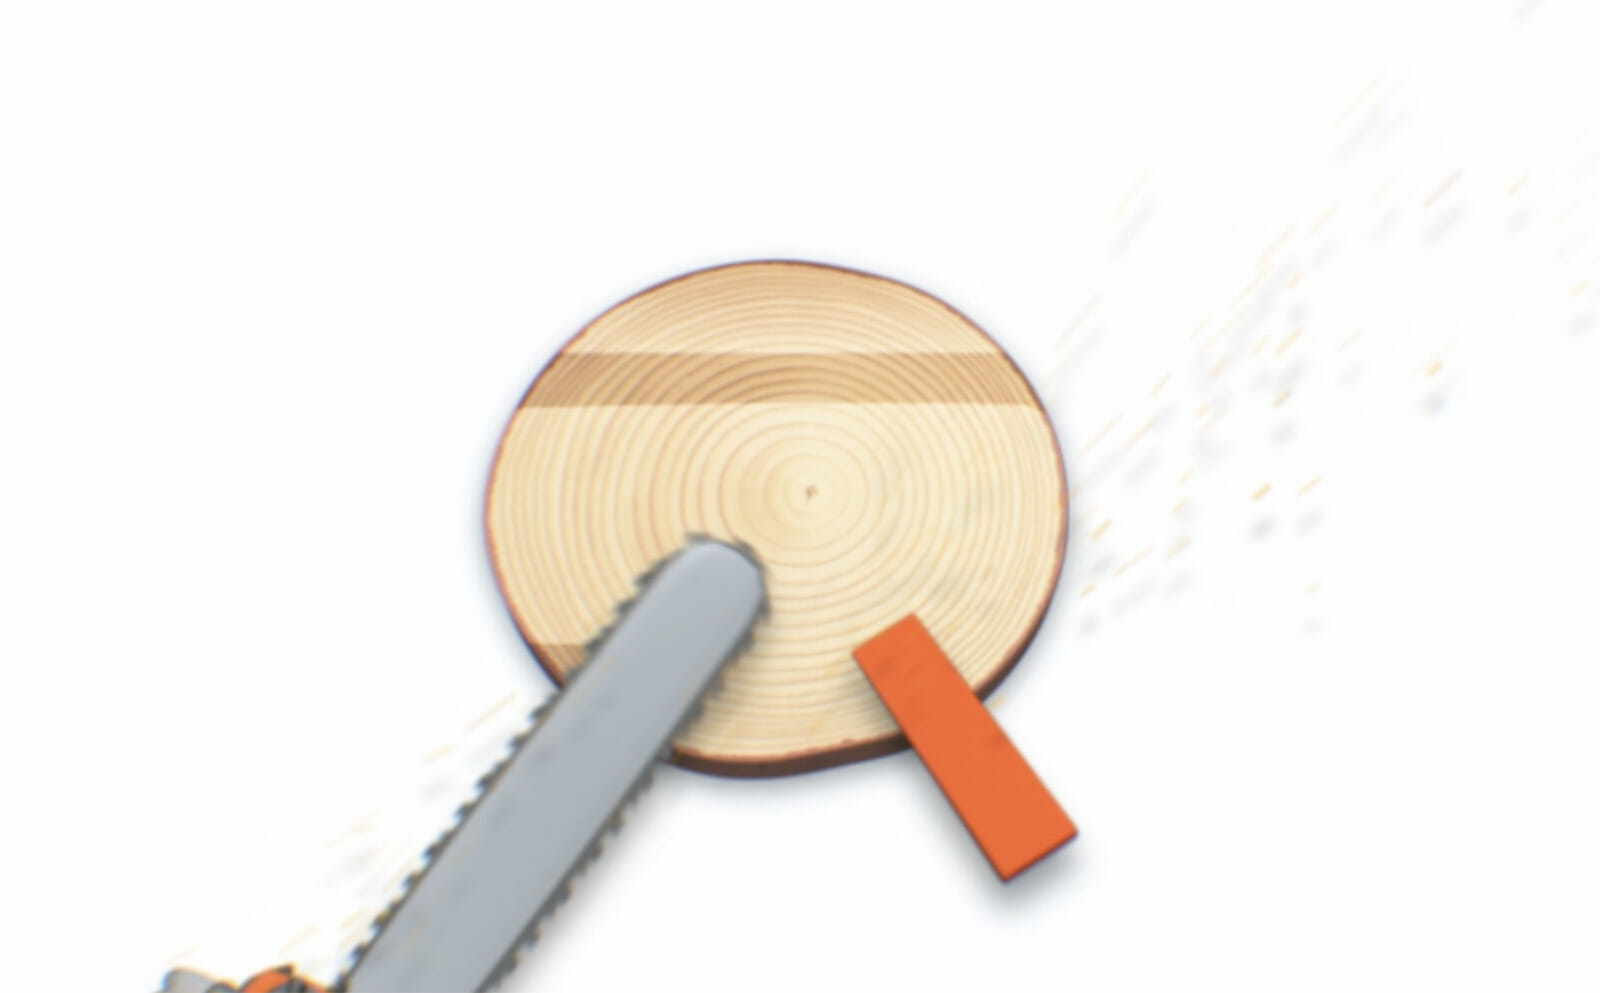 Illustration showing how the saw corner is sawn off to make the tree fall